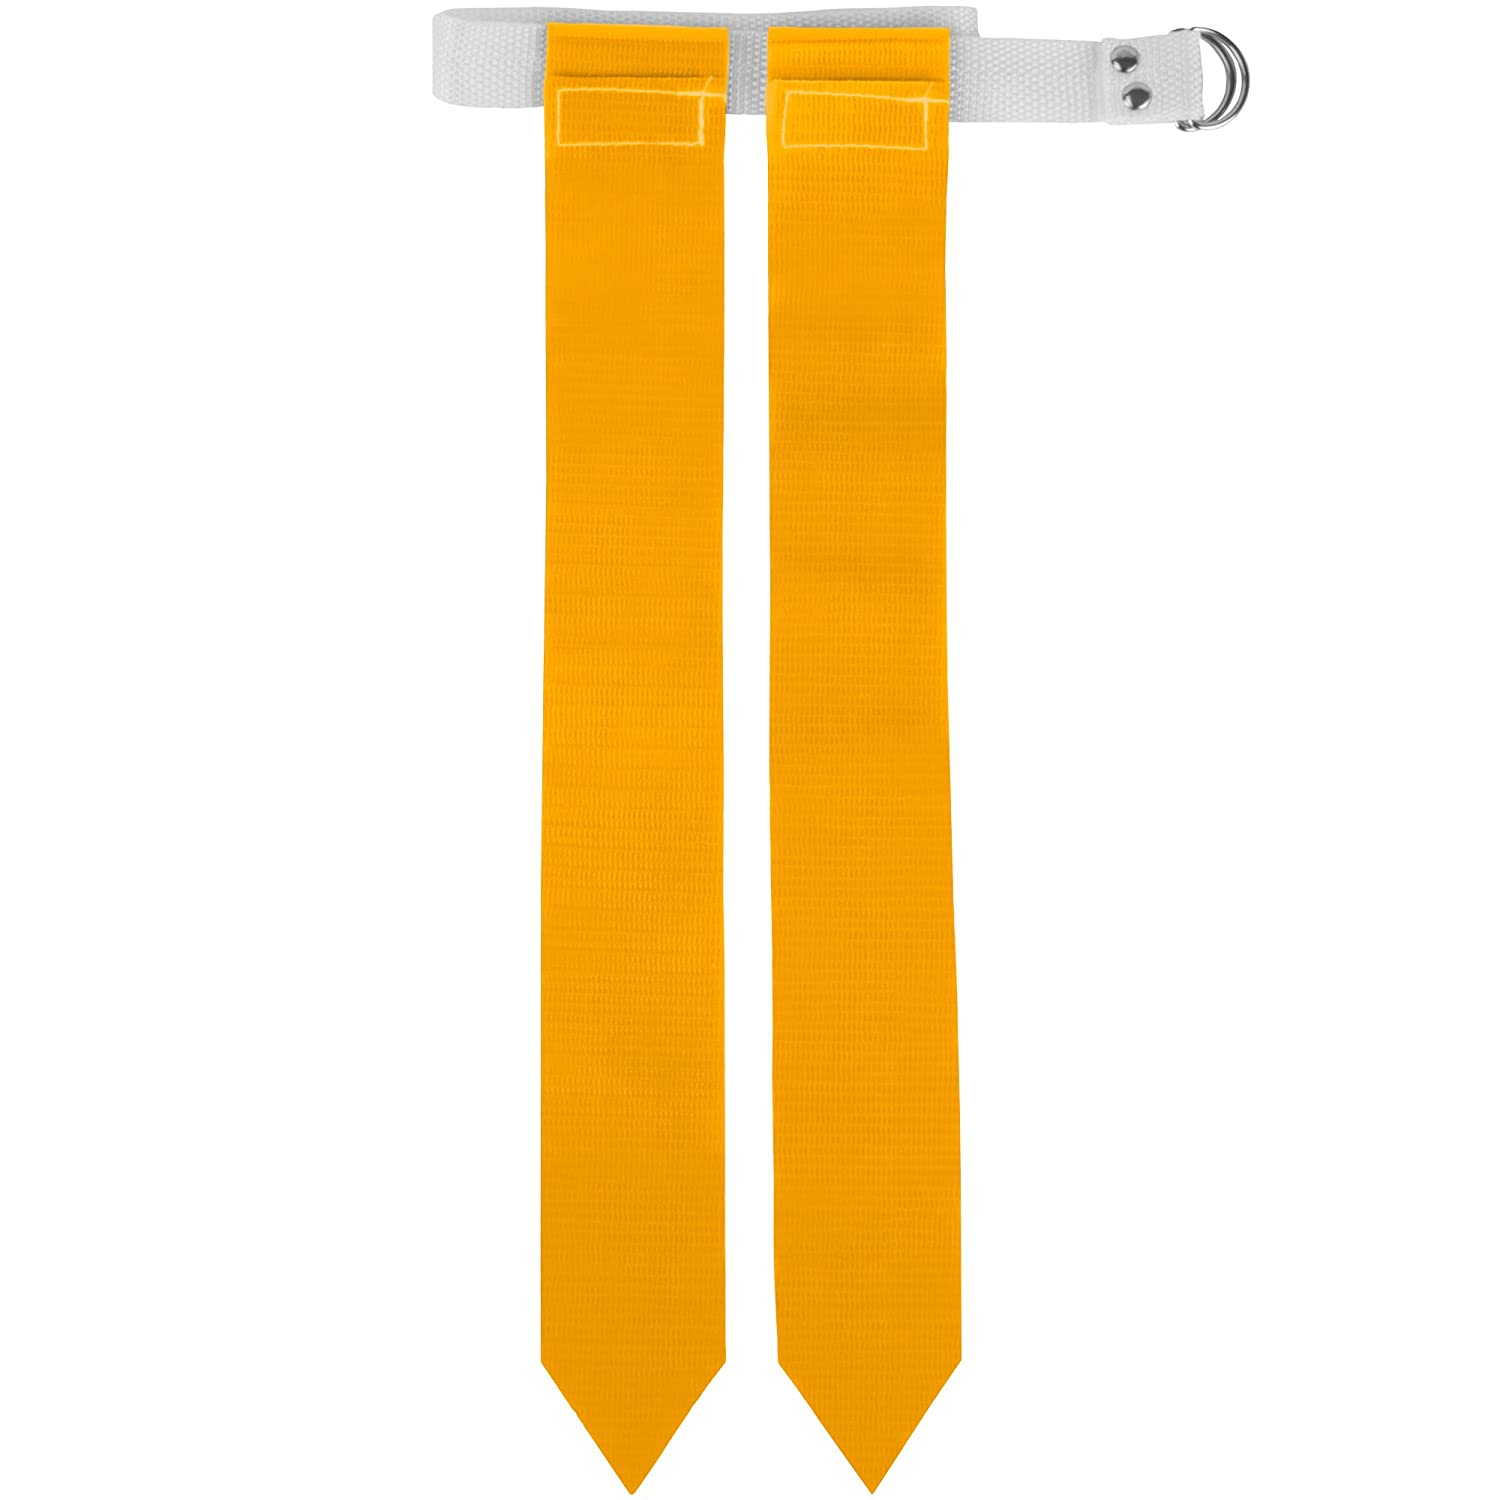 Flag Football Belt /& Flags Accessories for Flag /& Touch Games Practices Includes 1 Belt with 2 Flags /& Training by Crown Sporting Goods